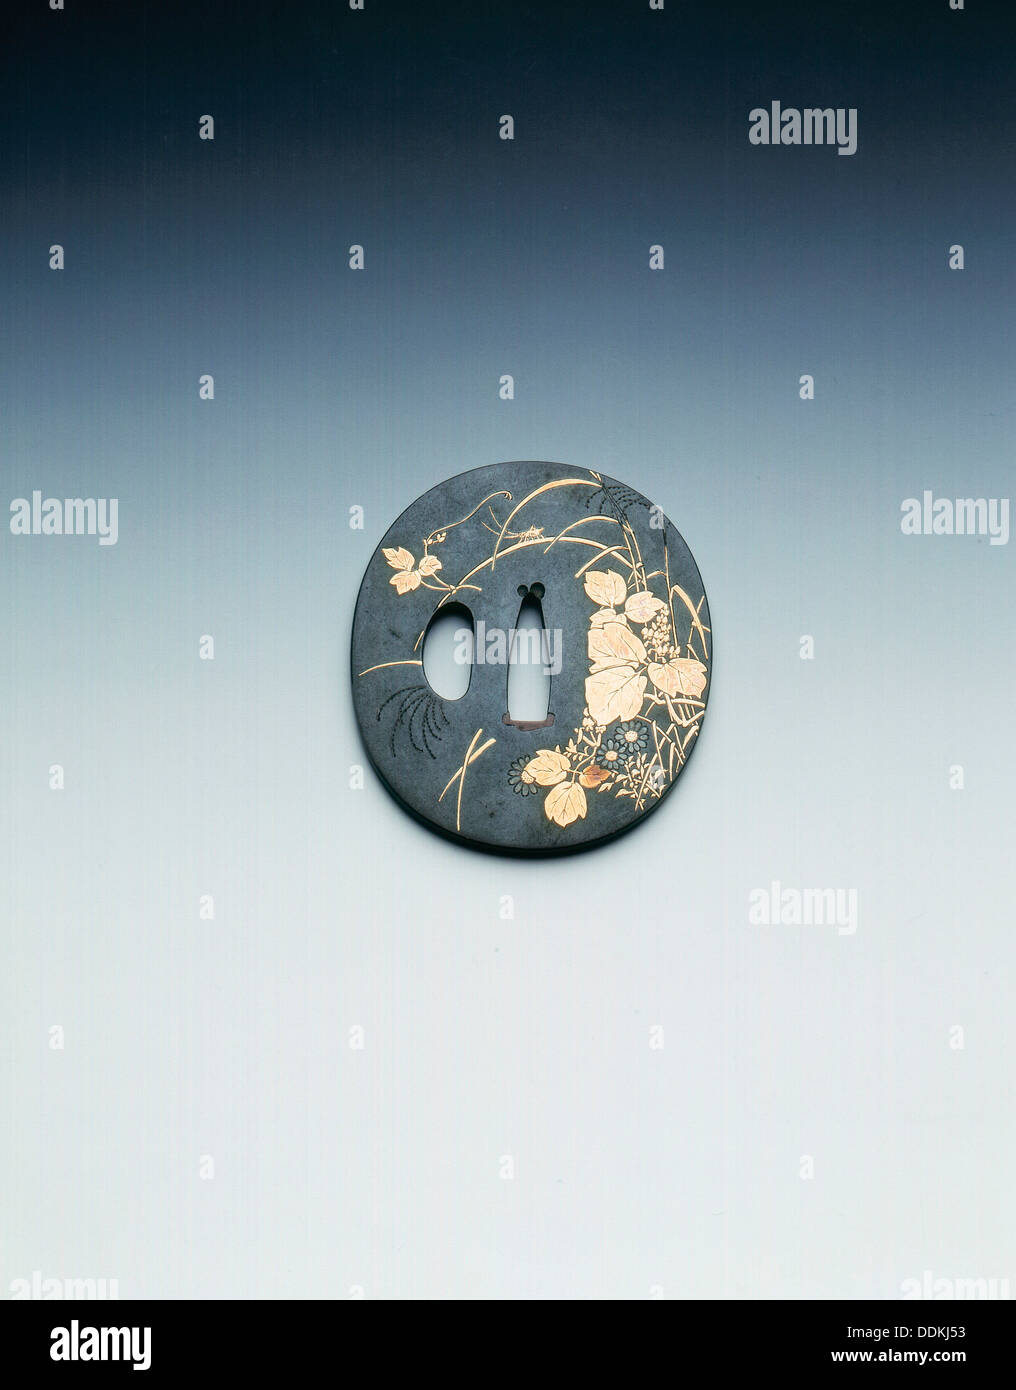 Gold Inlay Stock Photos & Gold Inlay Stock Images - Alamy